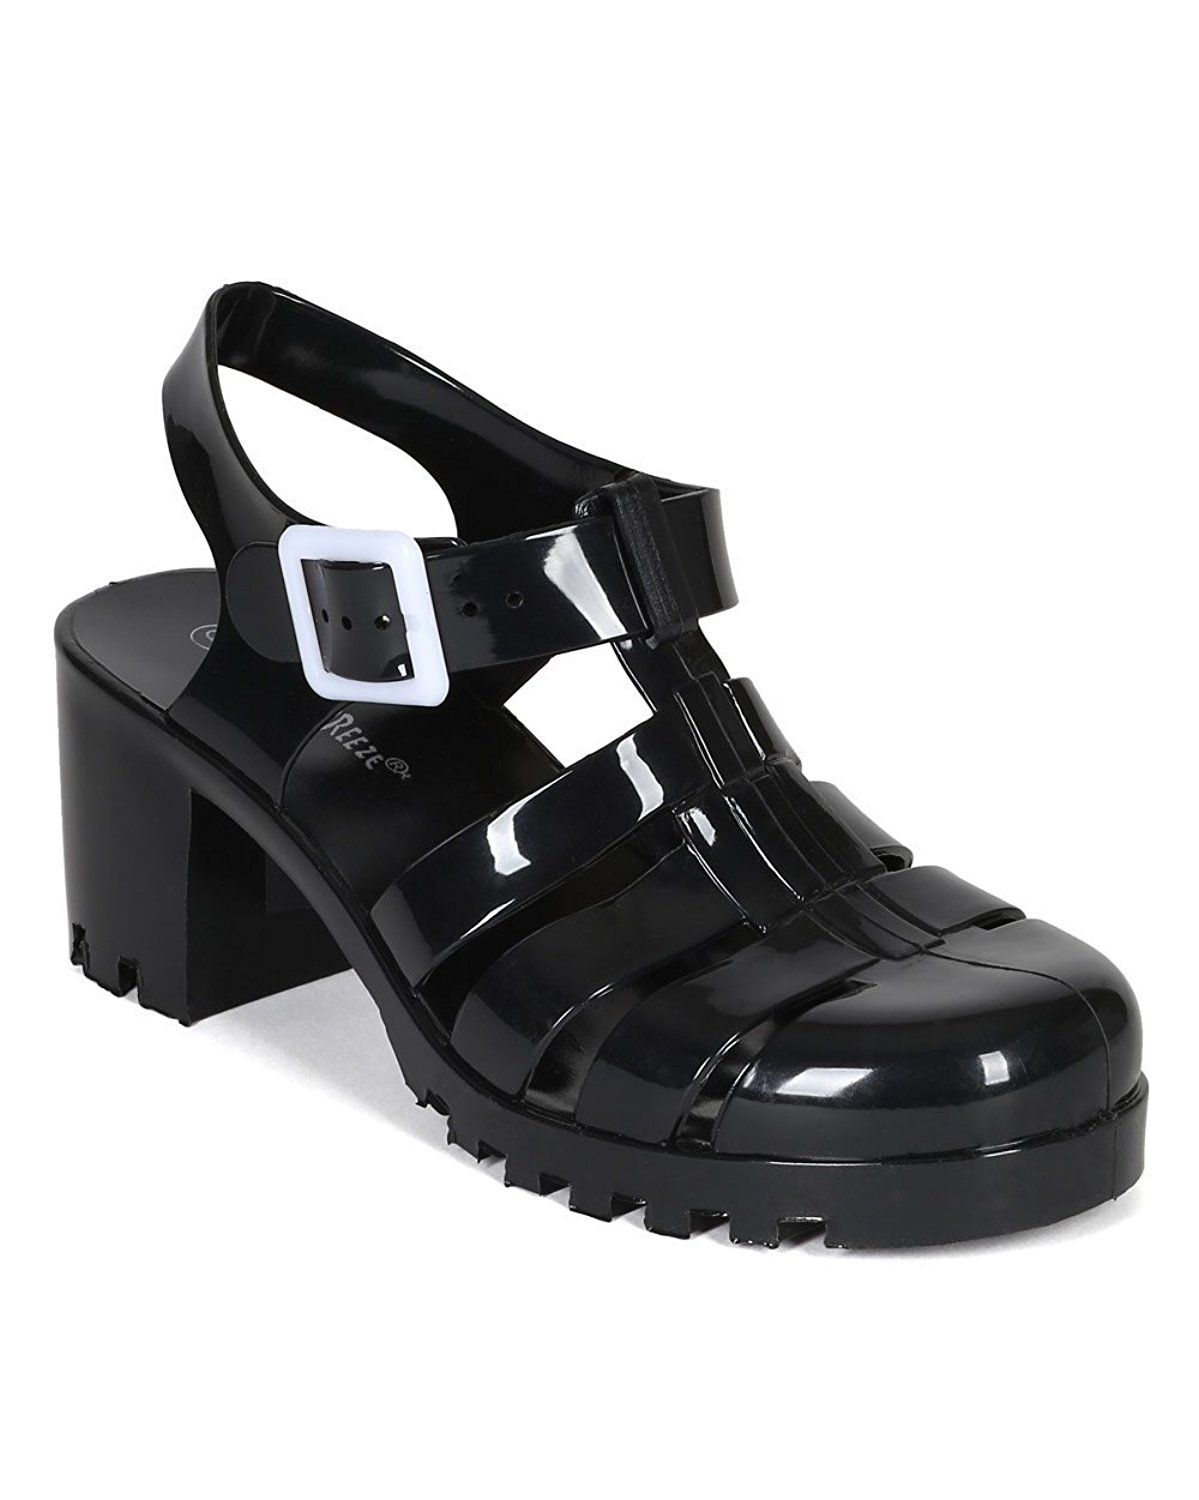 980a6b54aa8f RANEE Caged Heeled Jelly Sandal     For more information